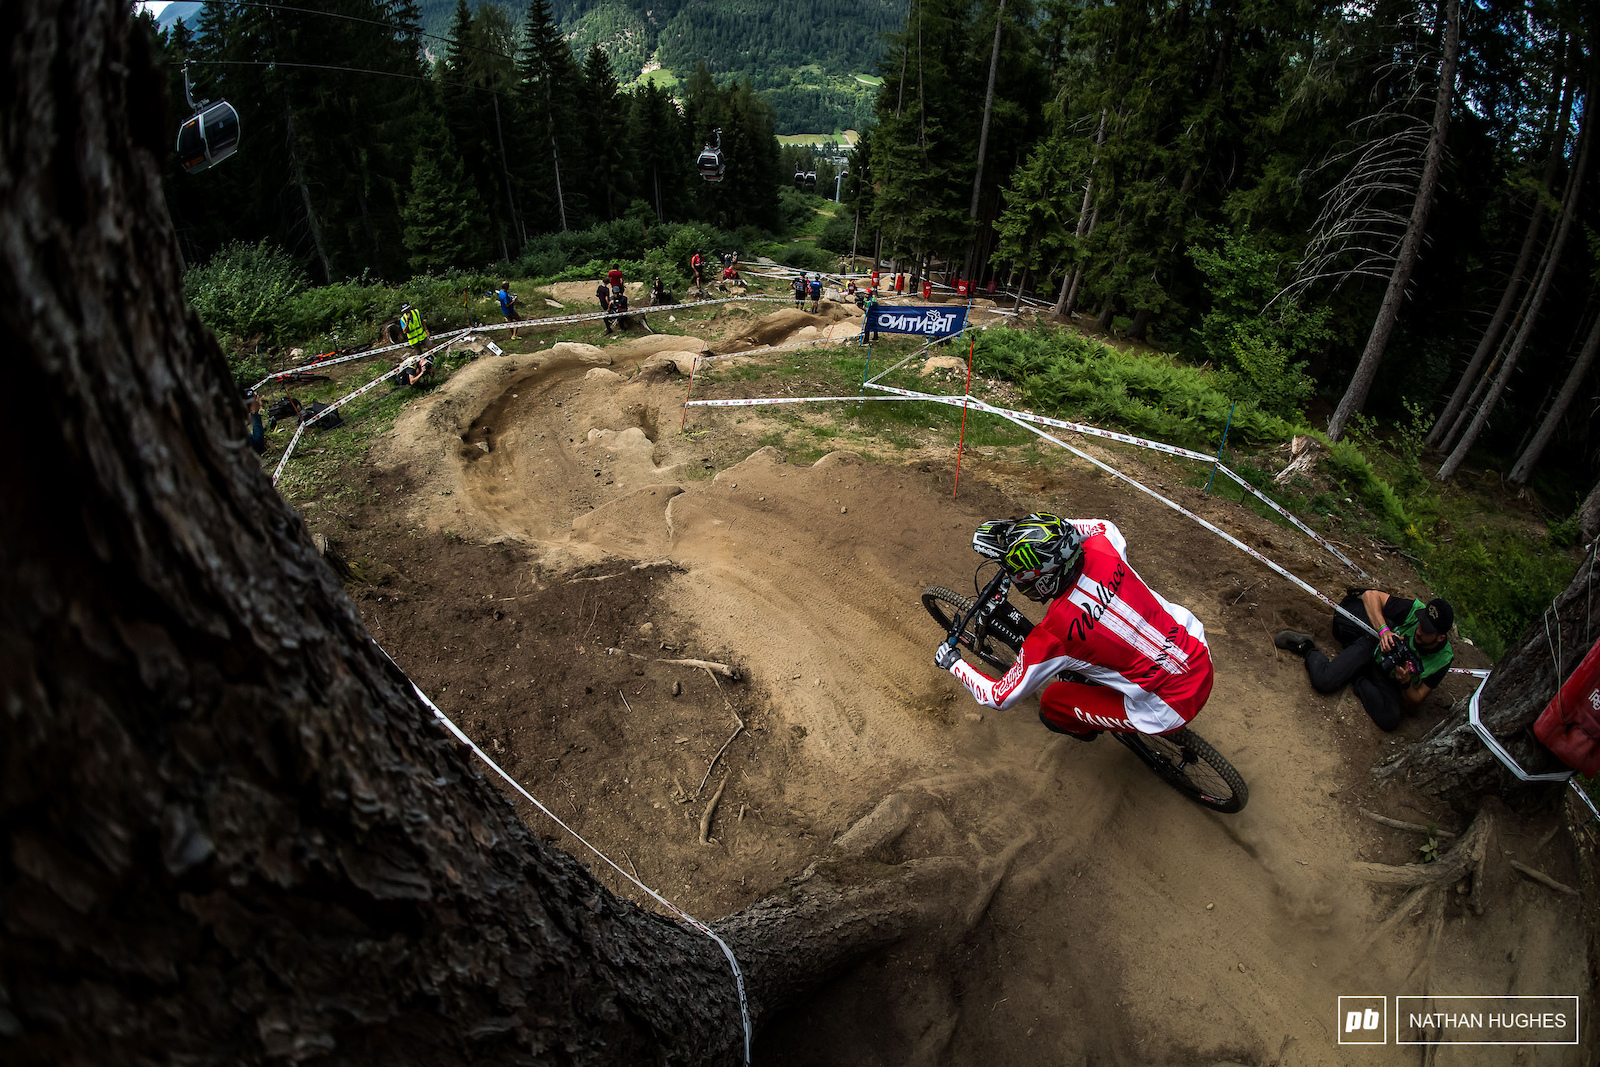 Mark Wallace upping the anti for team Canada coming into one of the many fast and ferocious sections of track.